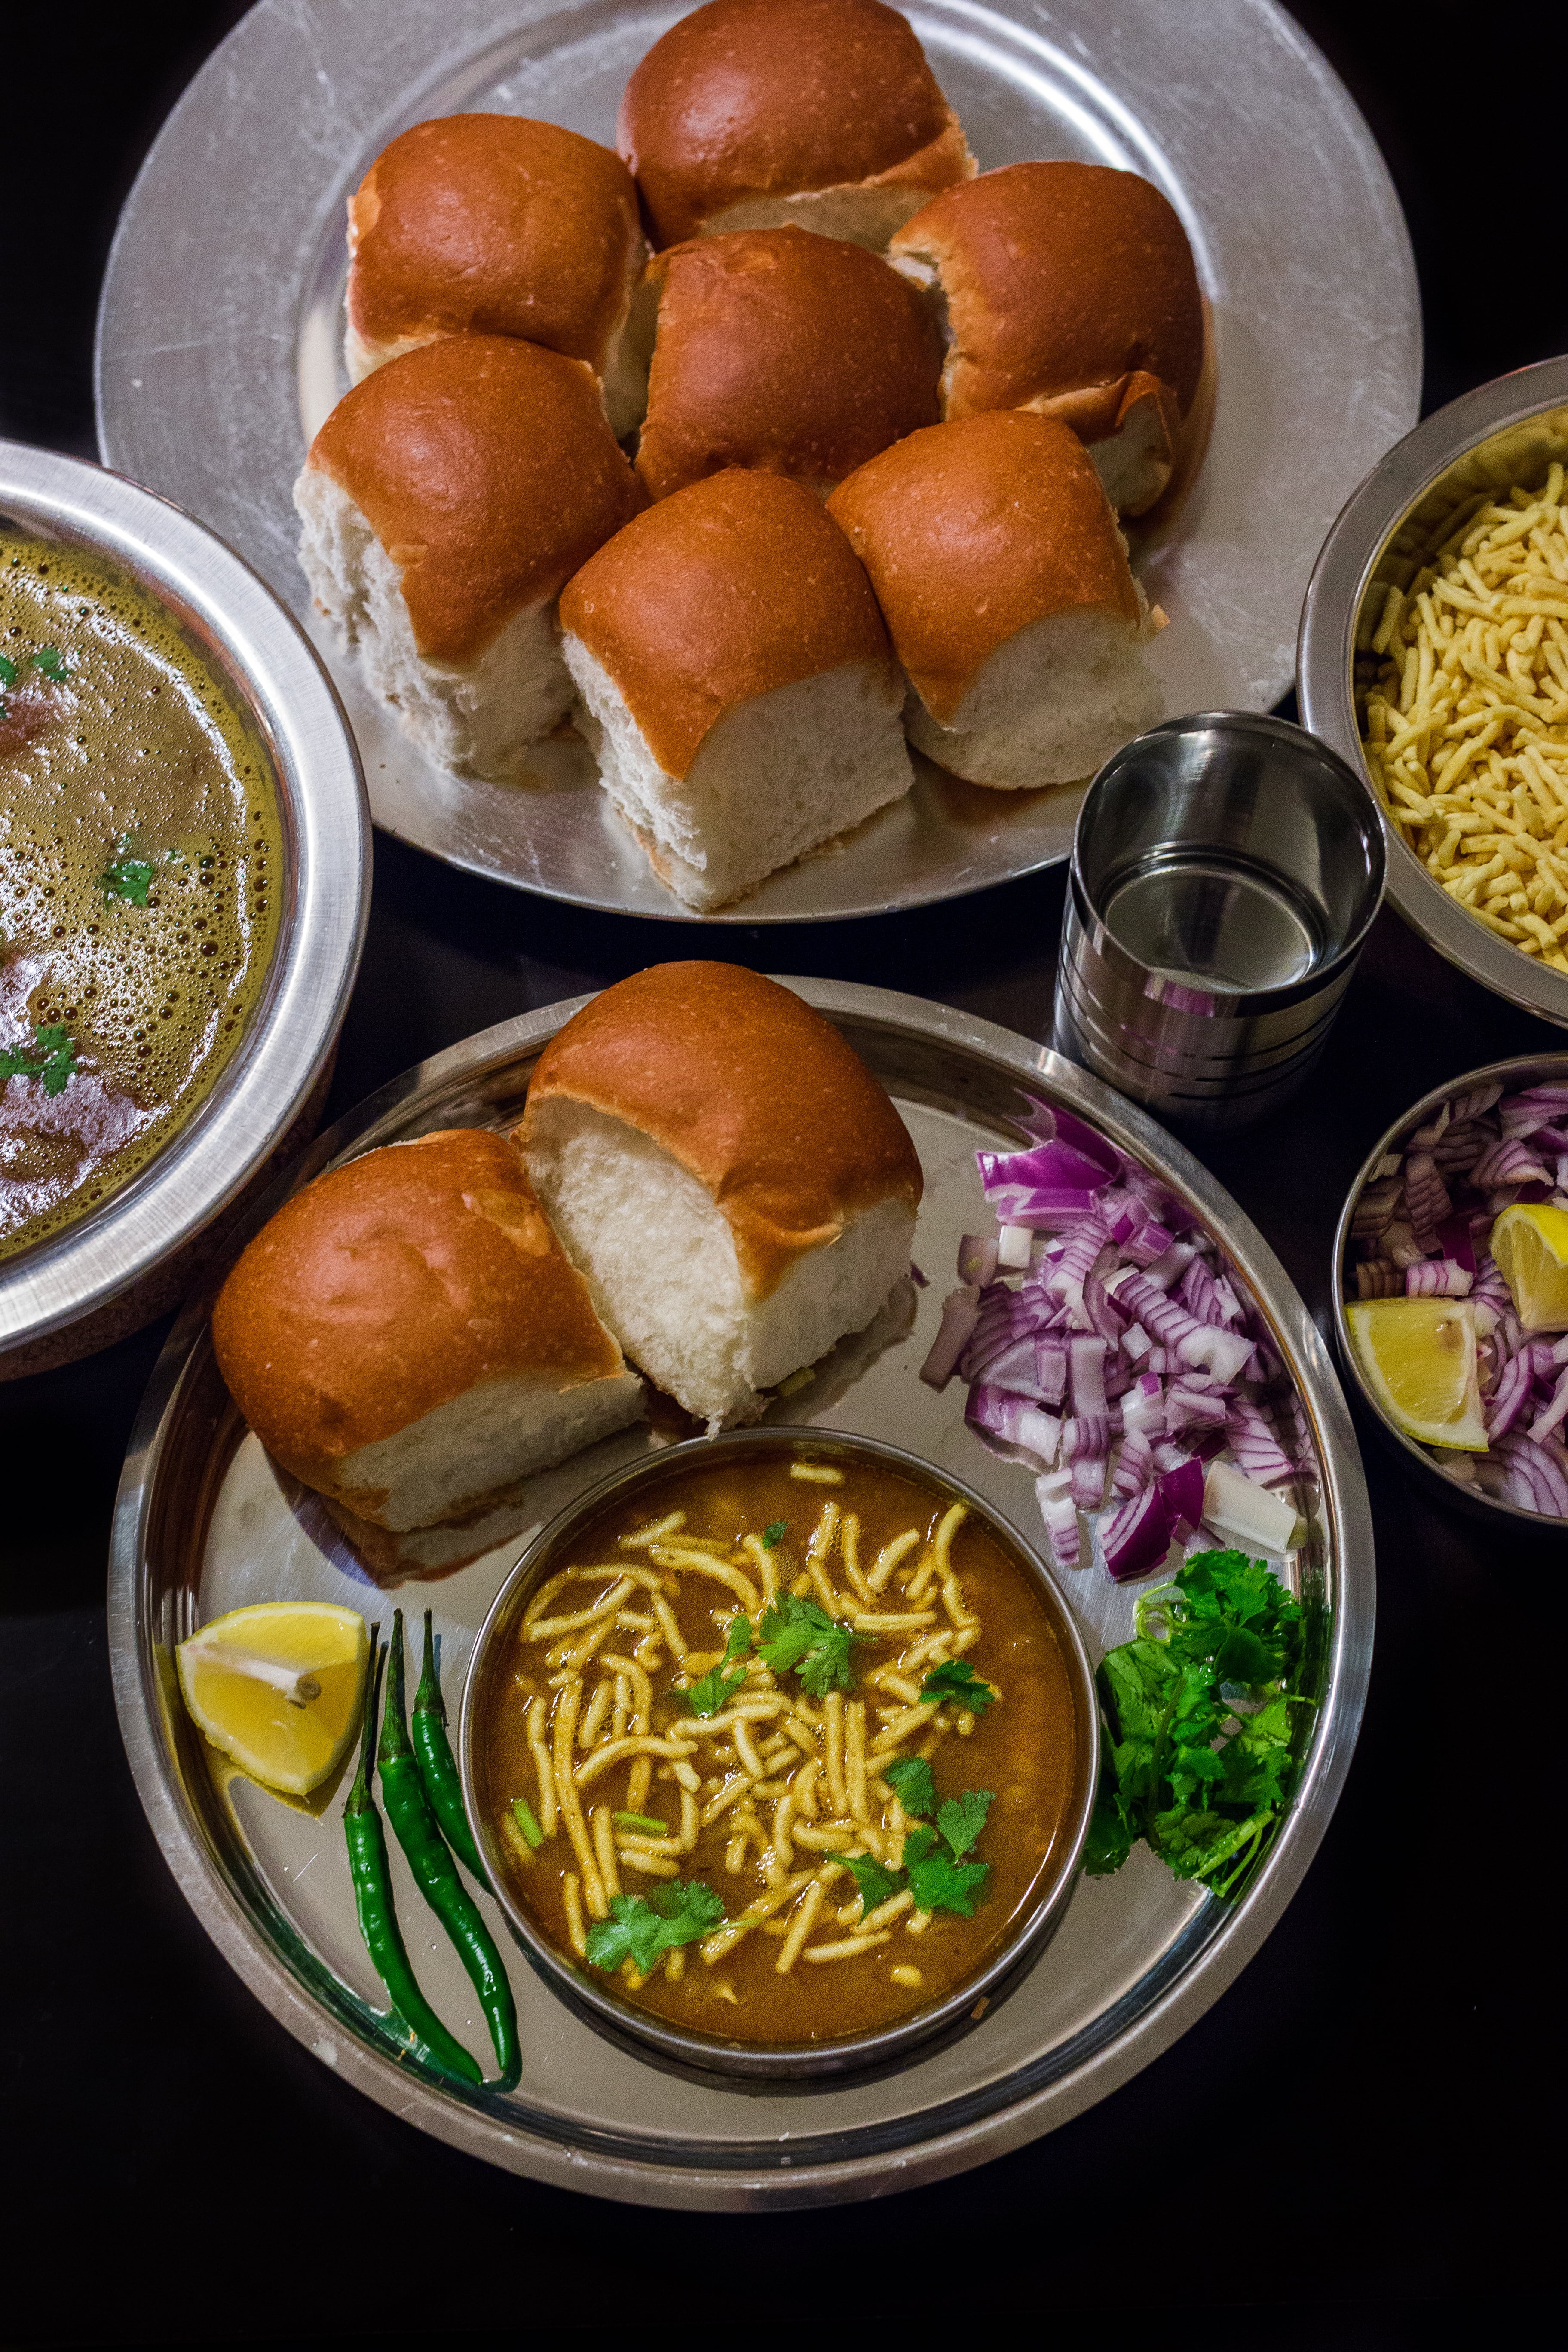 sevusal, baroda, usalpav, indianfood, spicy, tasty foodphotography, foodblog